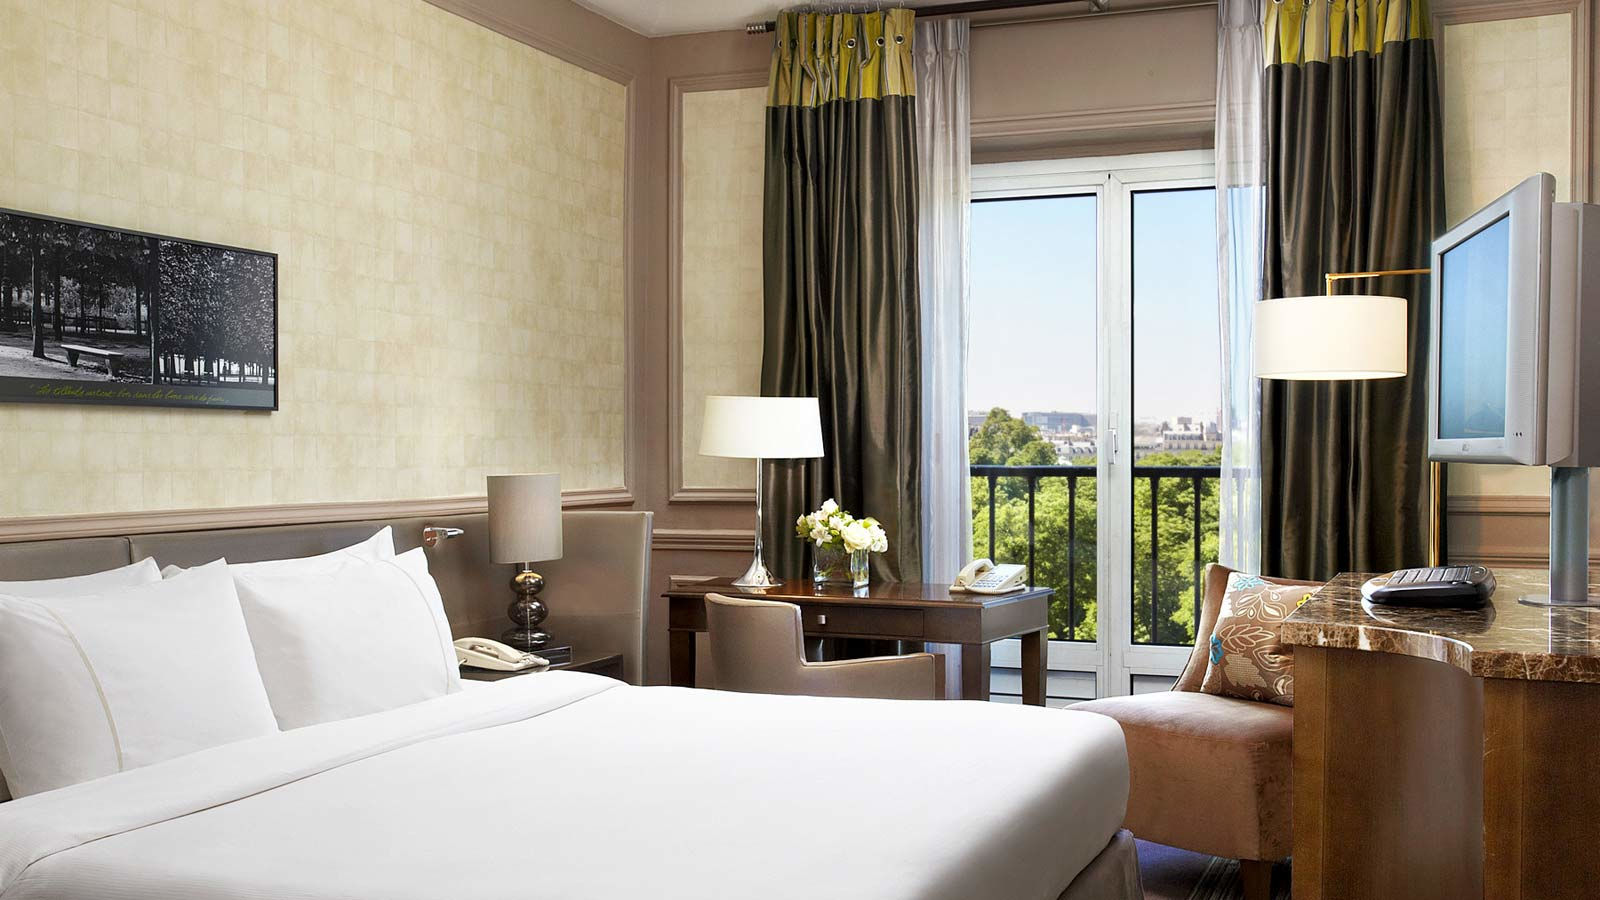 Room with Eiffel Tower View in The Westin Paris - Vendôme